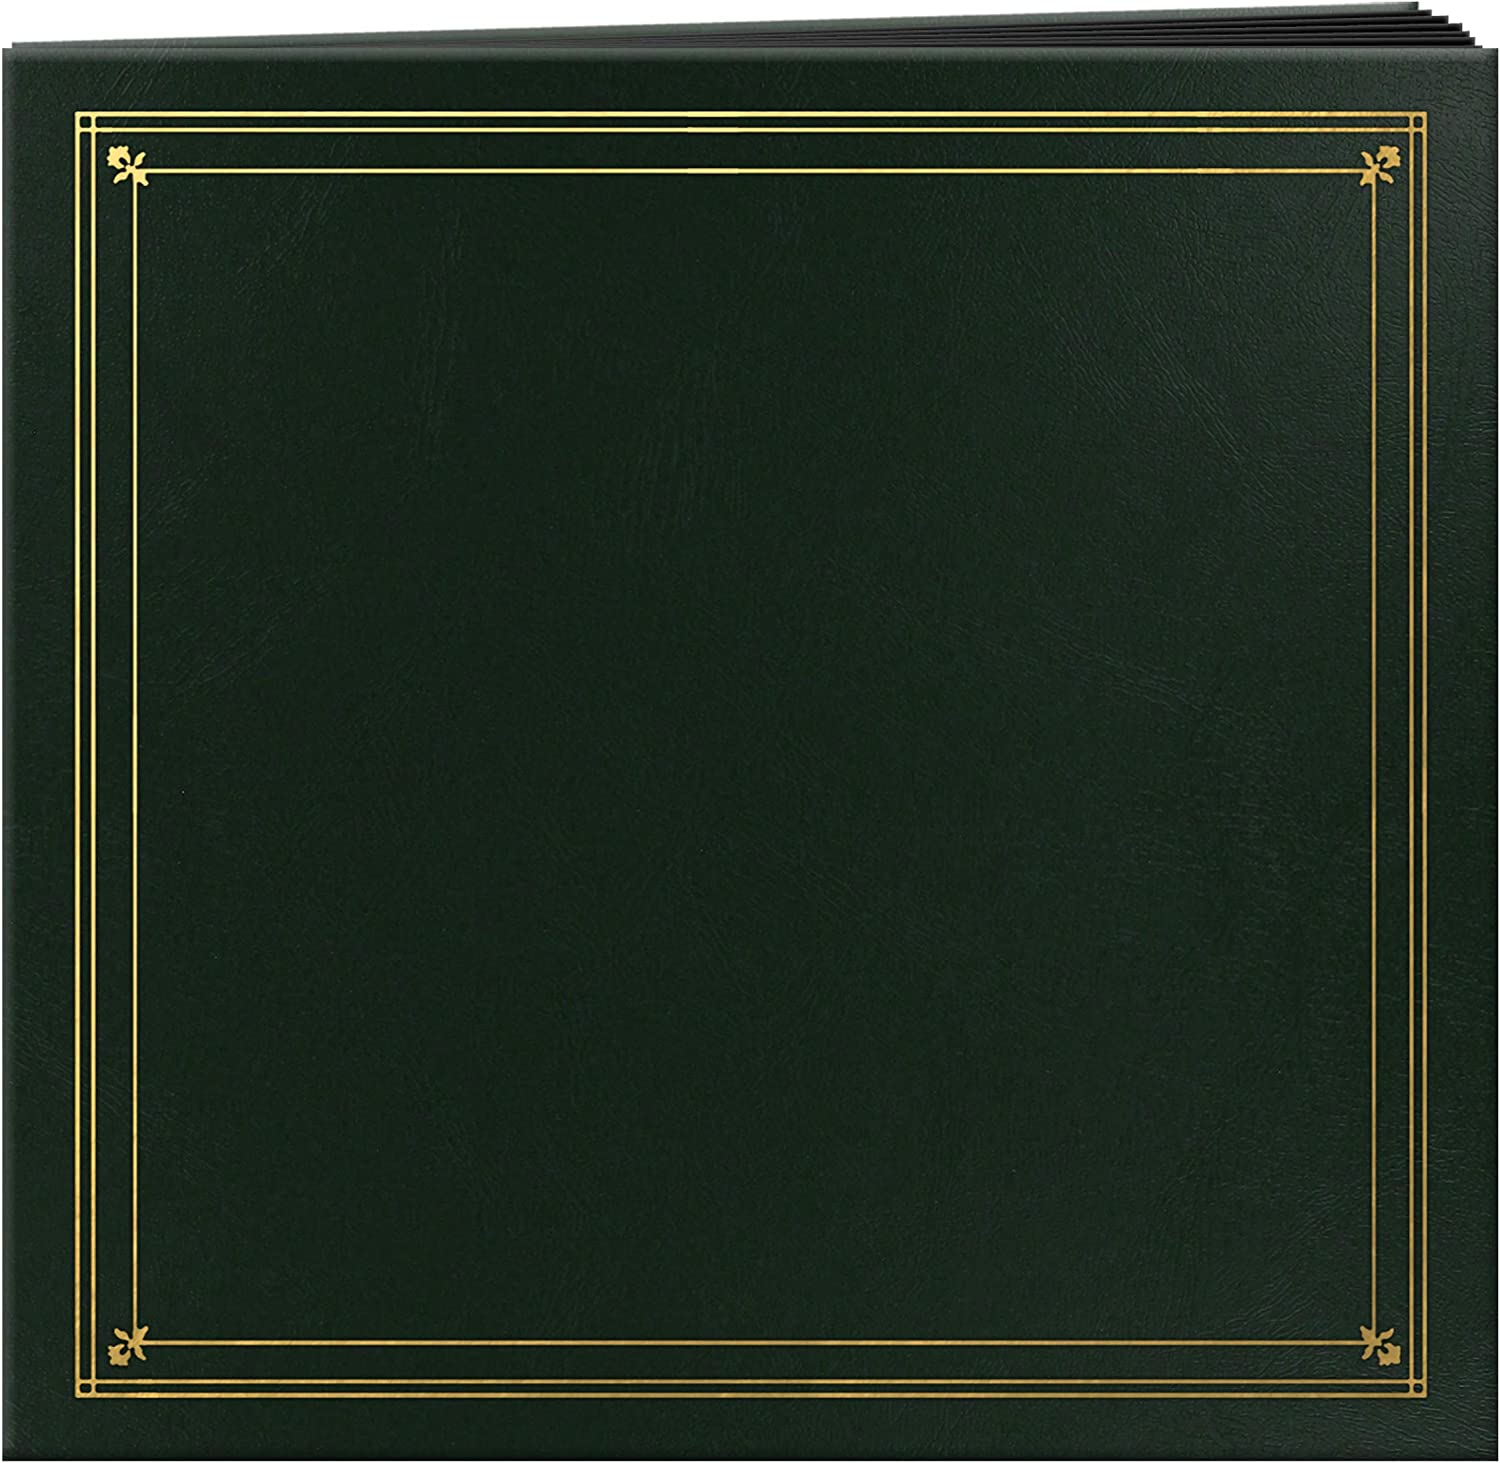 Black Pioneer Photo Albums Pocket Refill for BSP-46 Series Photo Albums 4 by 6-Inch